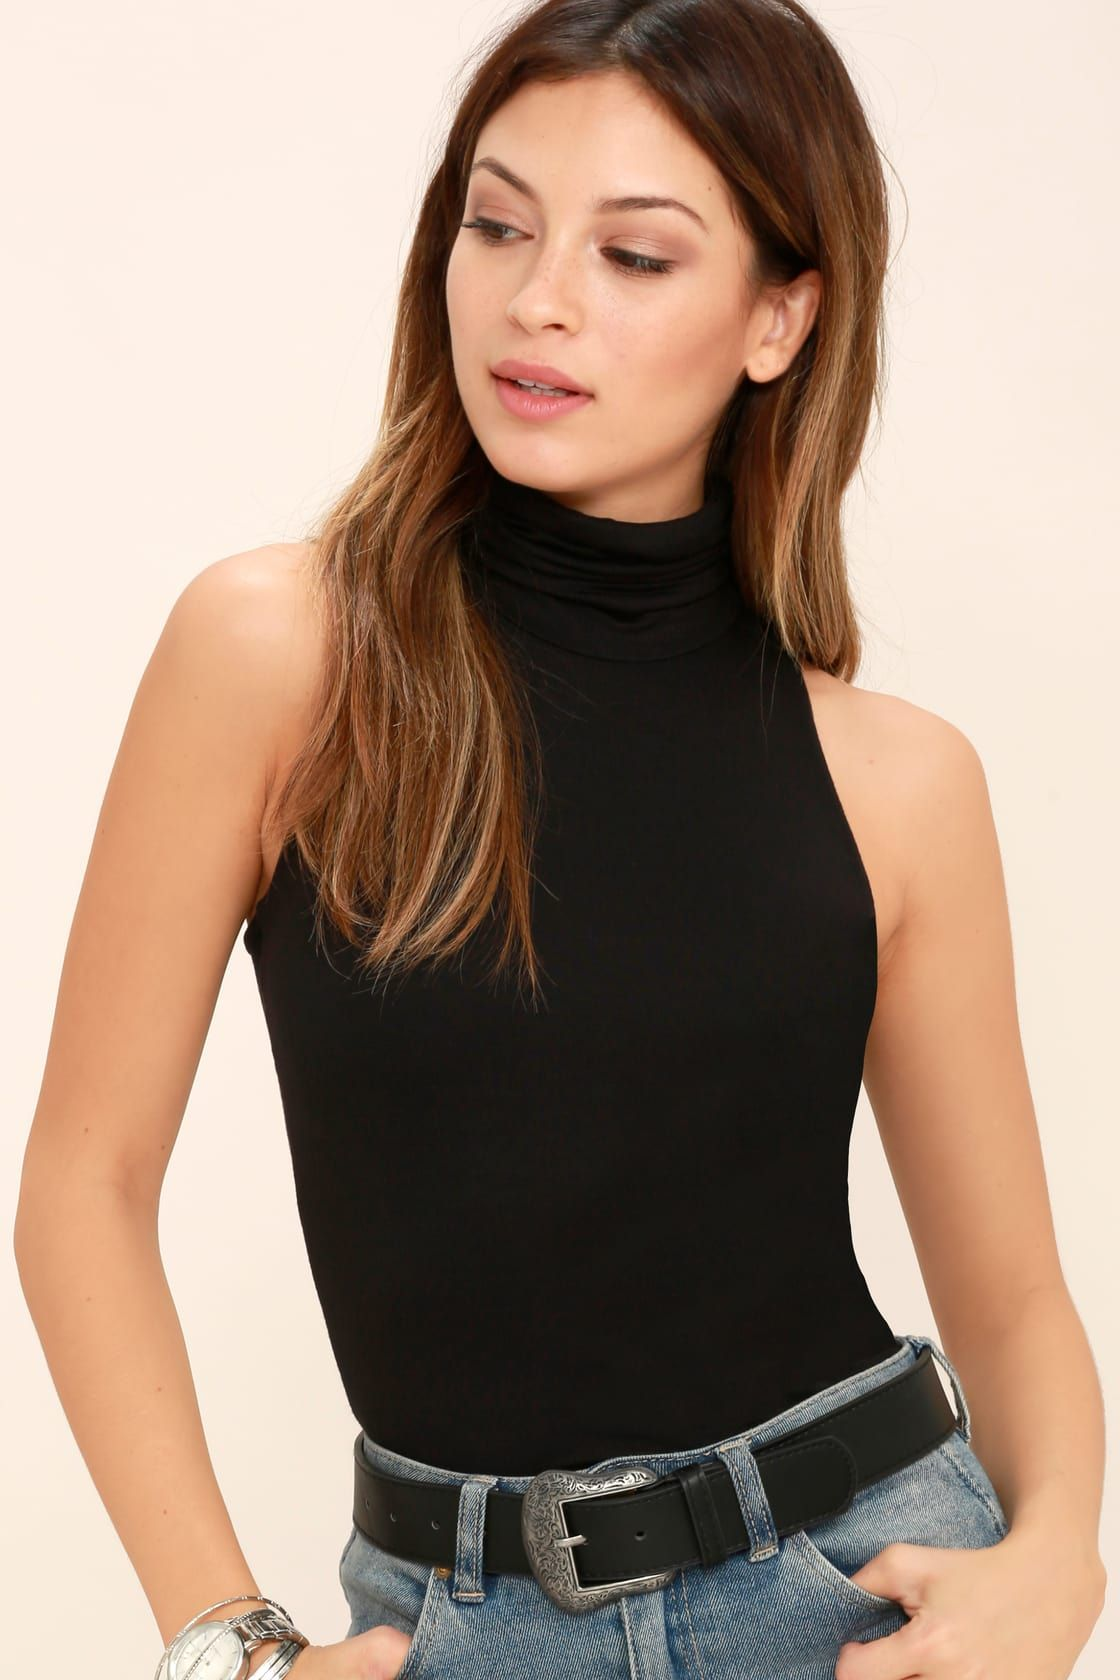 fdcad2b1f8 Lulus | Alive and Kicking Black Sleeveless Turtleneck Top | Size ...